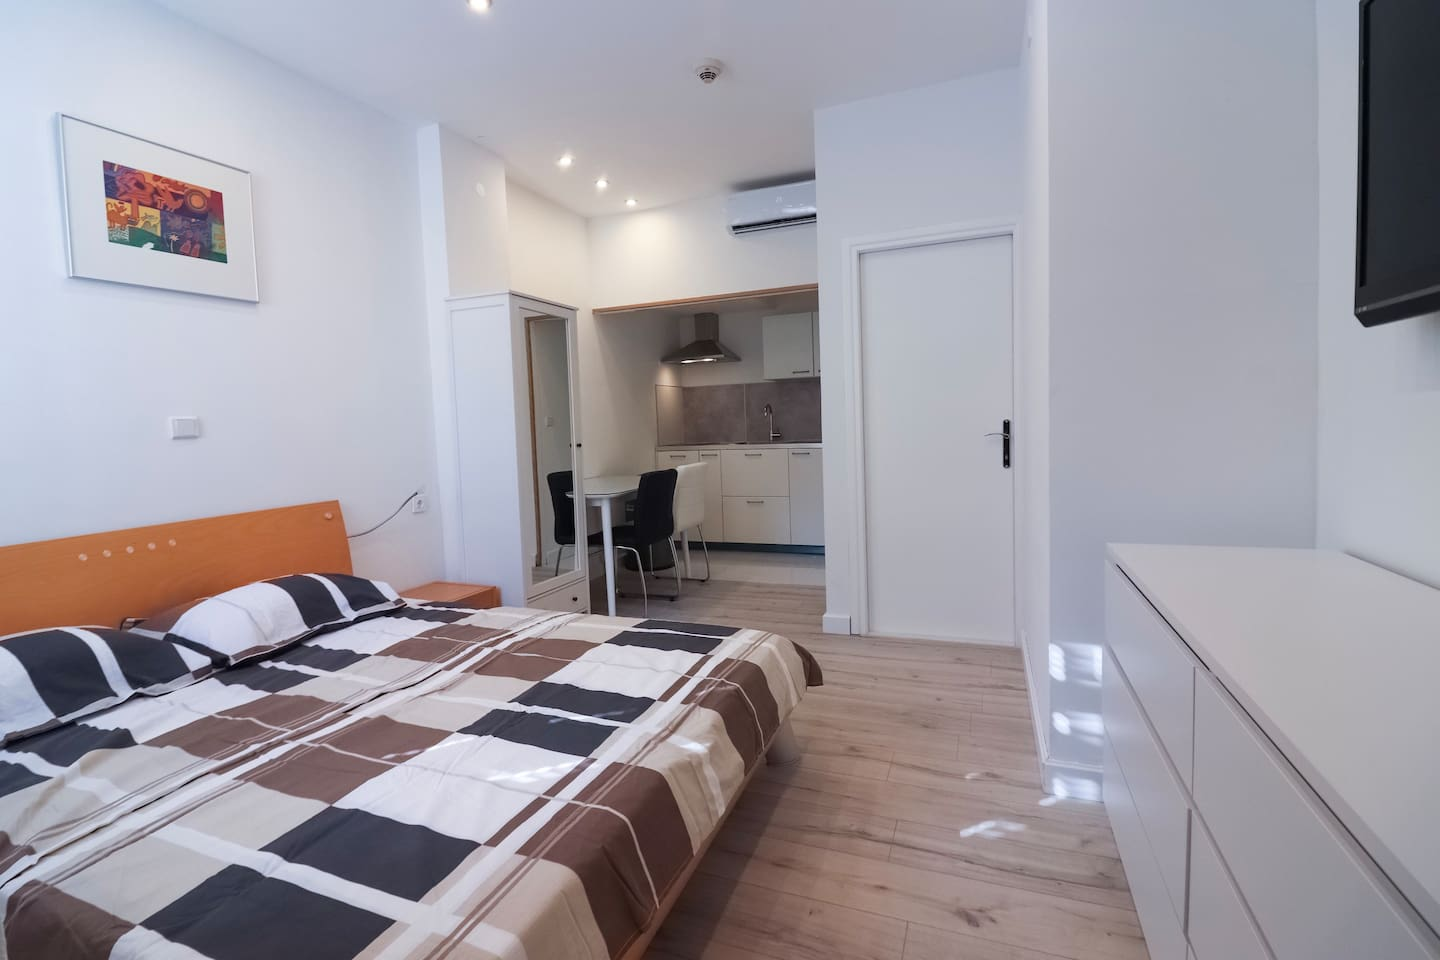 DREAM Studio Apartment Split • 1-2 guests  Features: • Wi-Fi • Air conditioning • LCD TV • Free parking